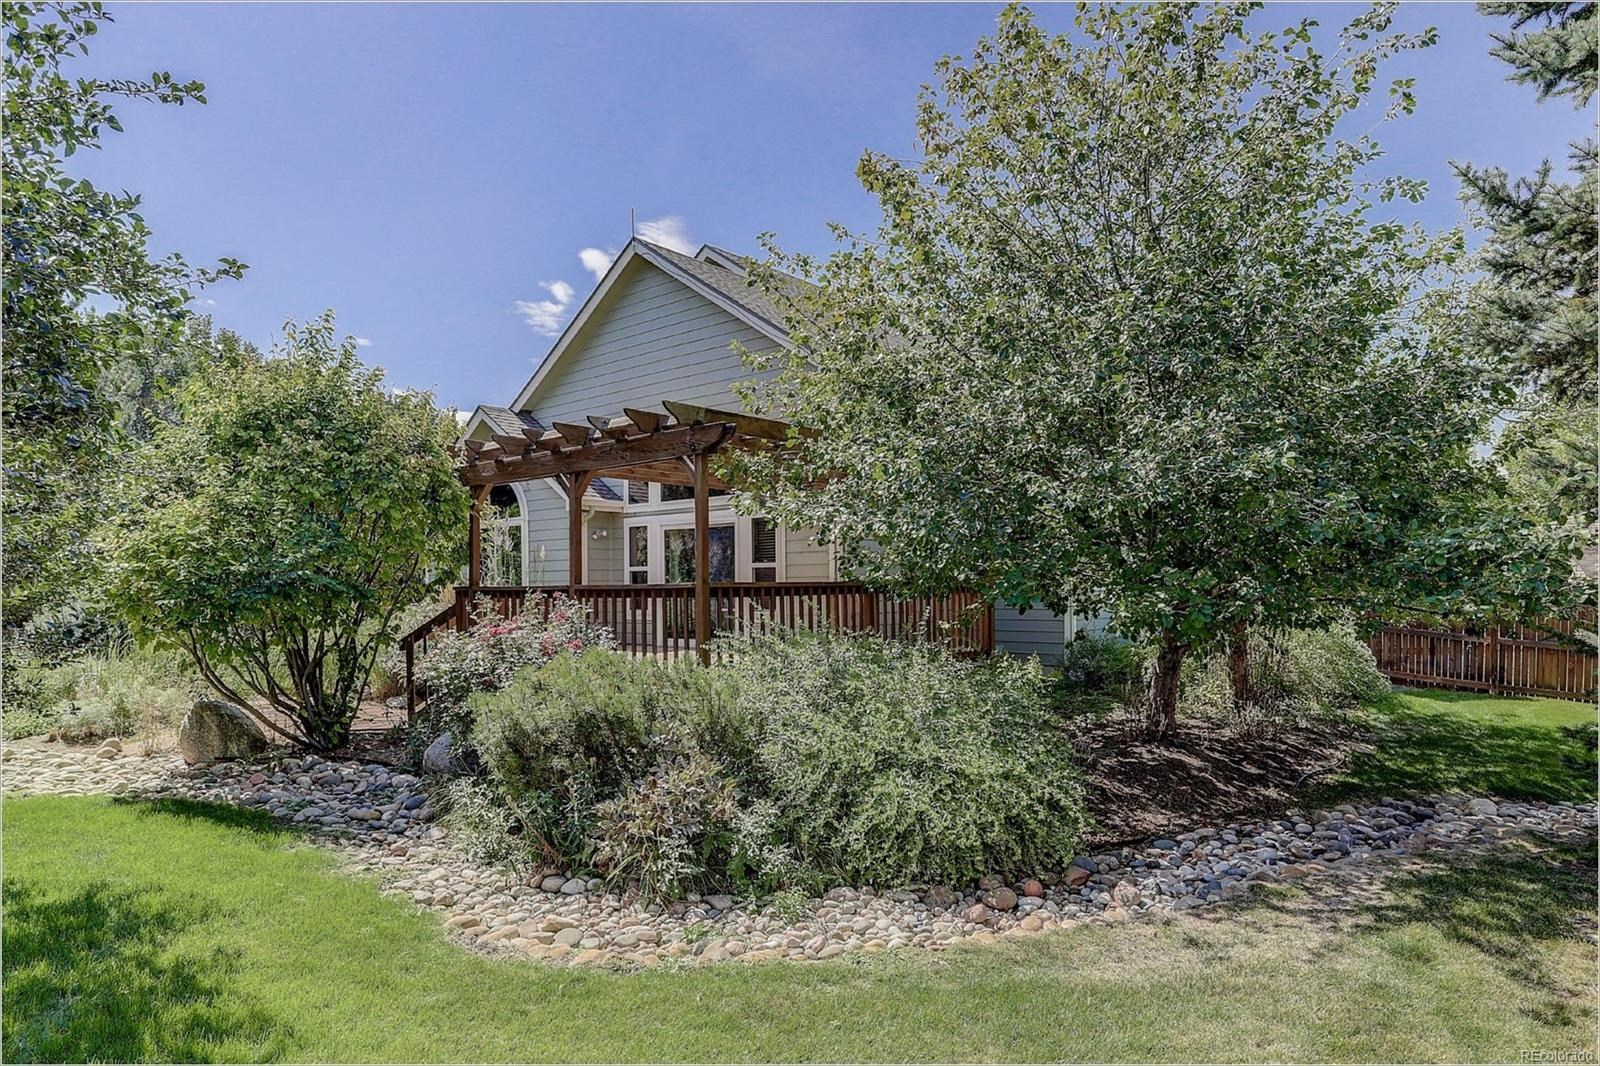 MLS# 8327774 - 35 - 806 W 127th Court, Westminster, CO 80234